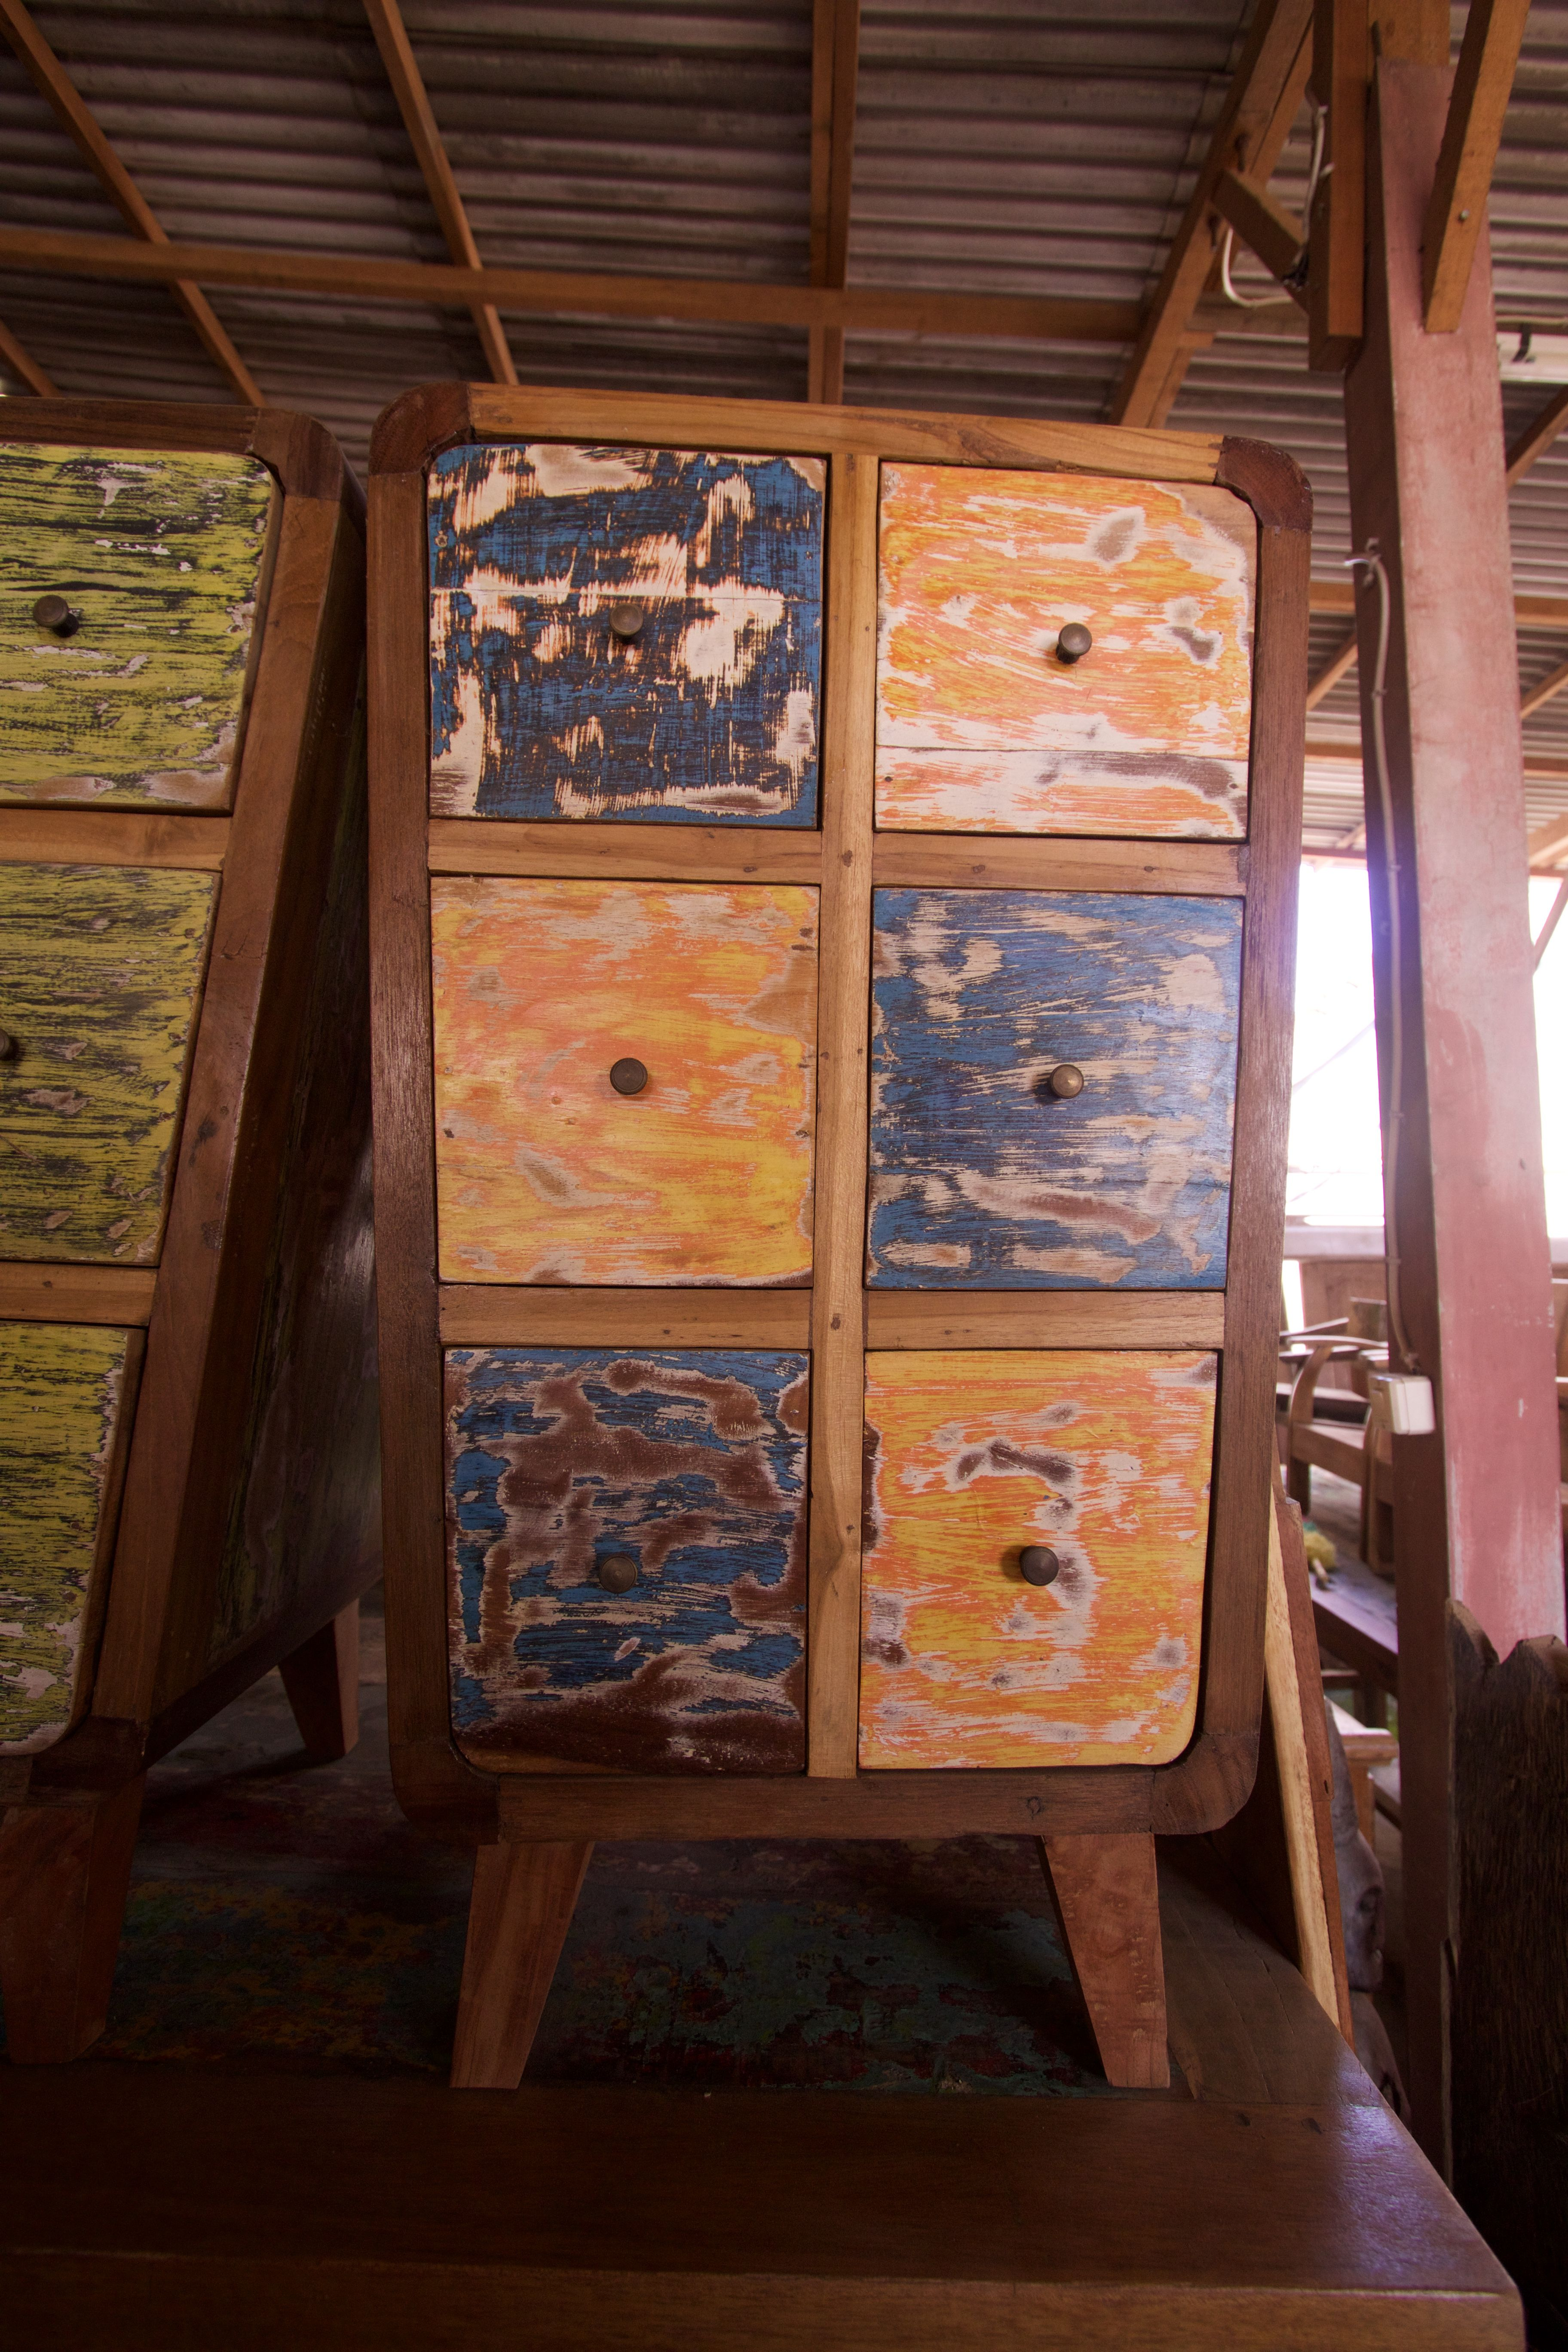 Go green with our new reclaimed teak western decor furniture available - Recycled Teak Indonesian Boat Furniture